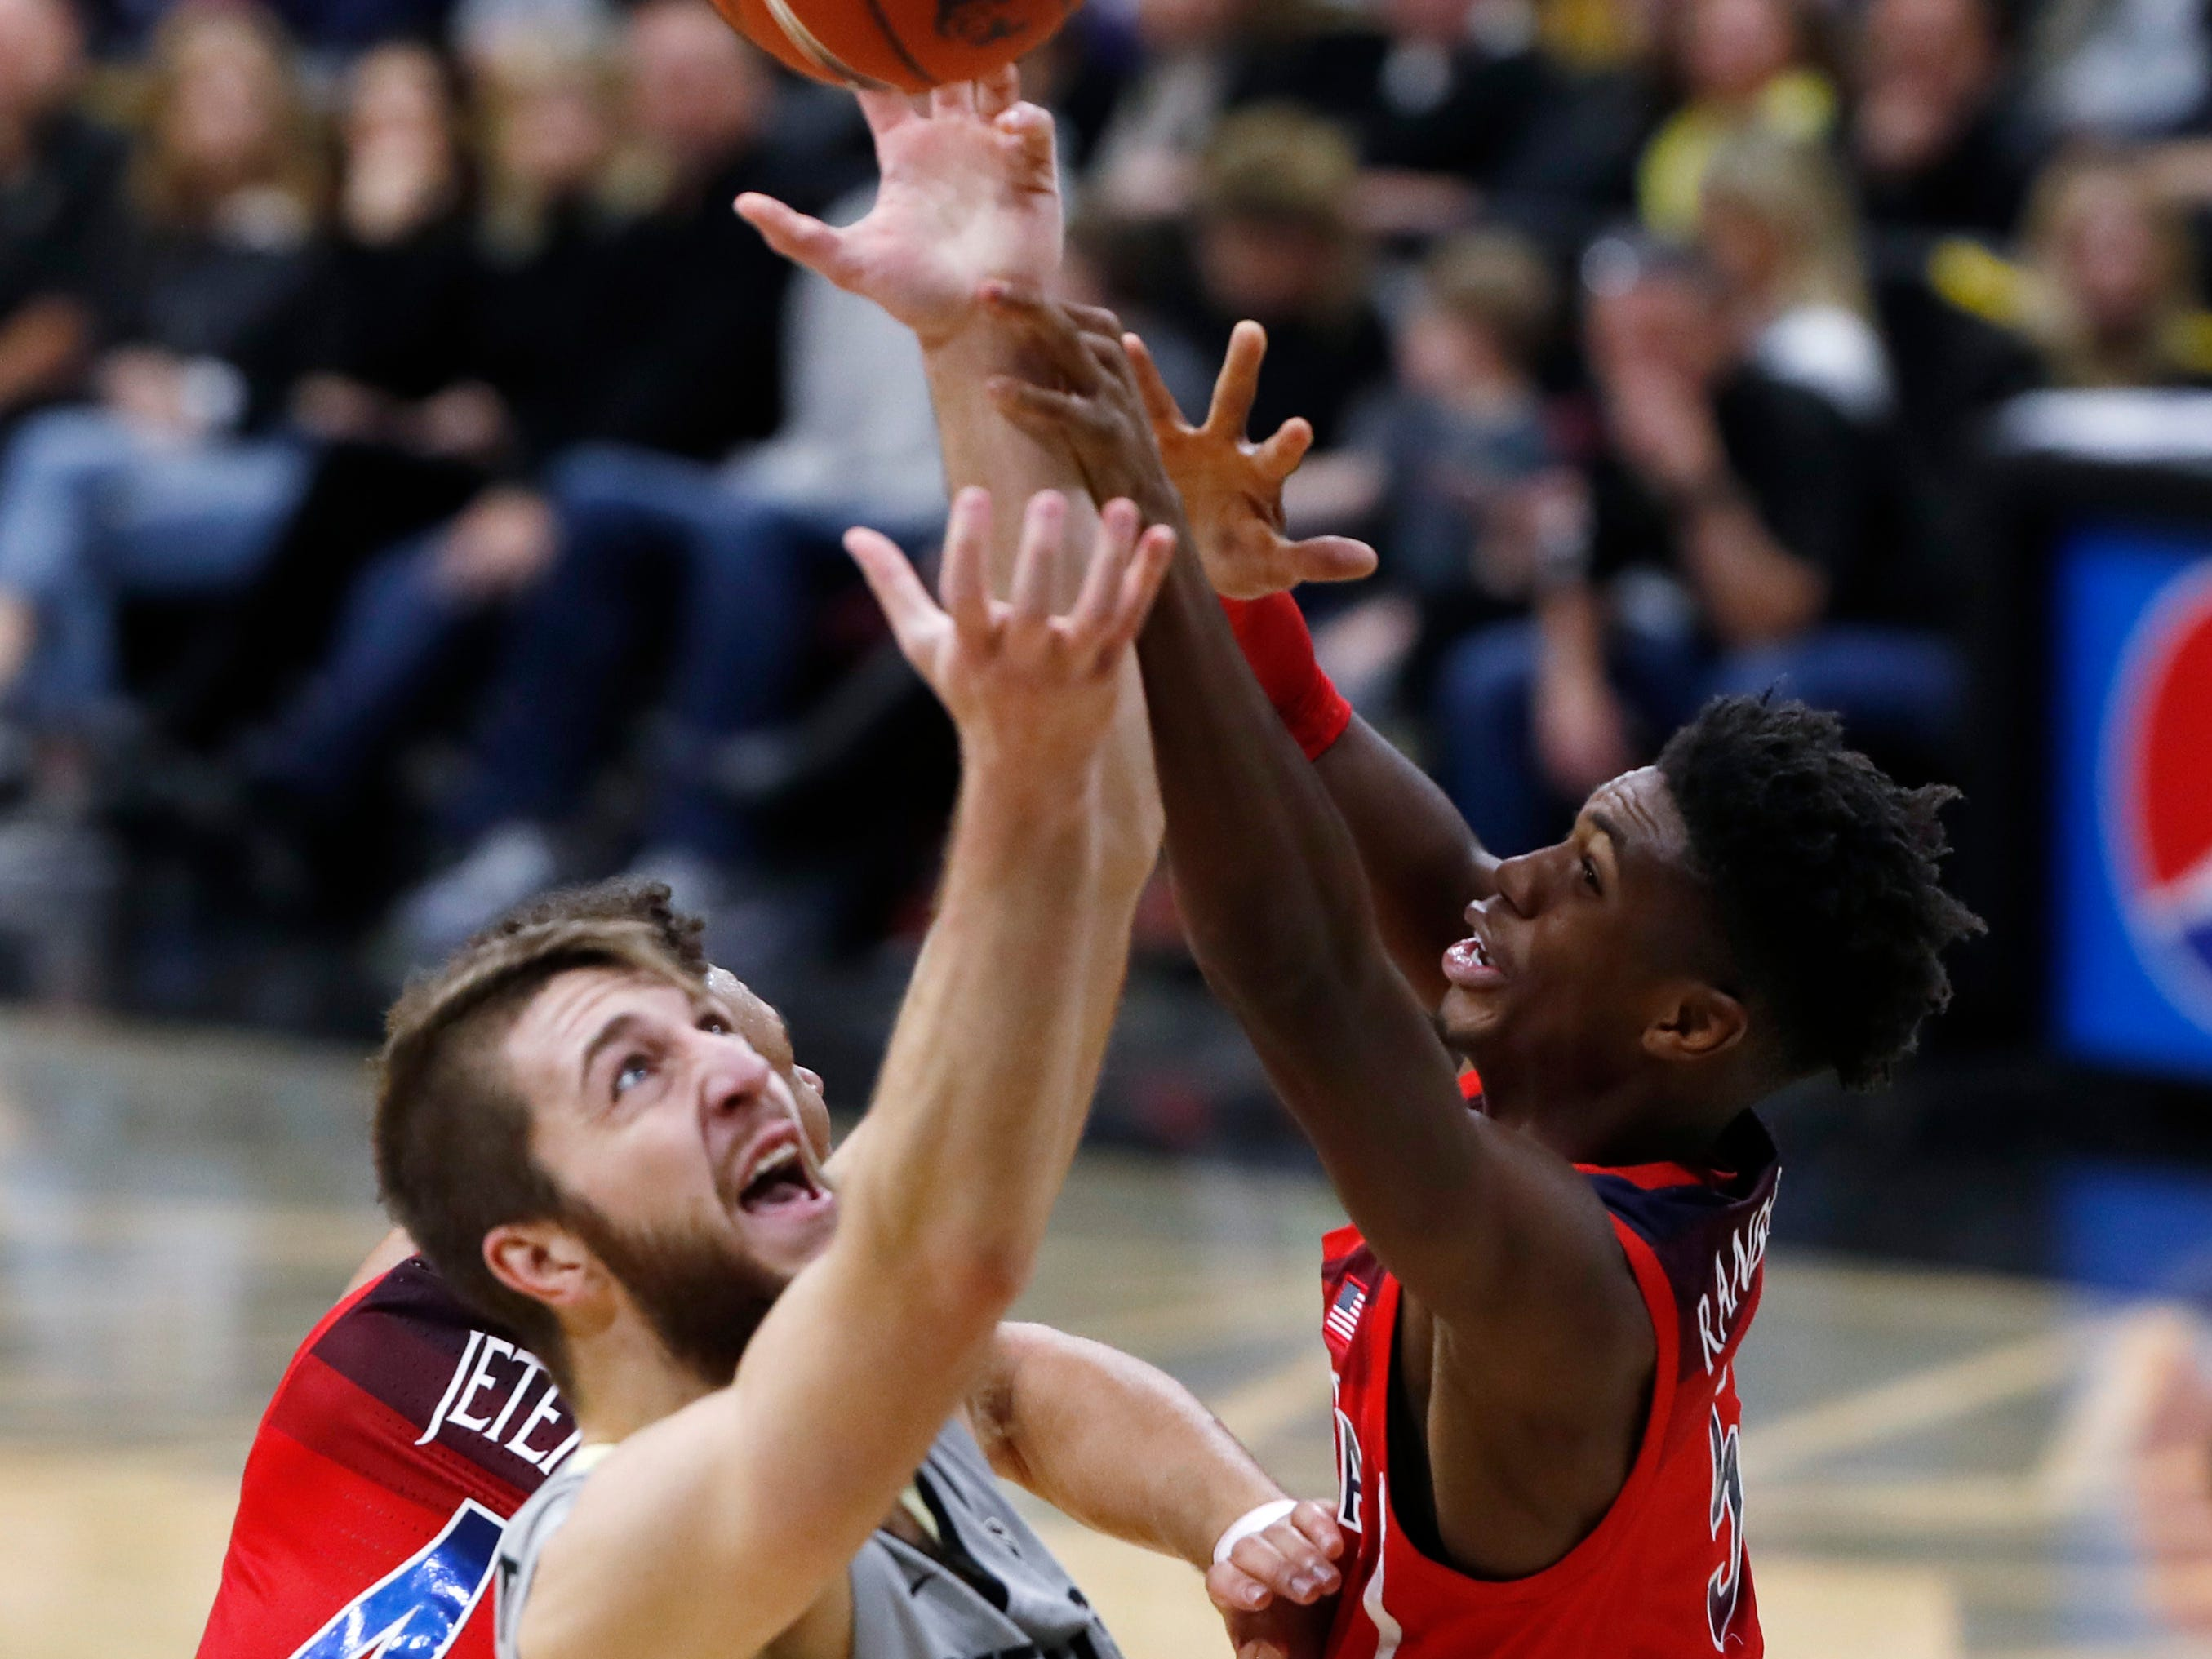 Colorado forward Lucas Siewert, front, pulls in a rebound as Arizona Wildcats center Chase Jeter, back left, and guard Brandon Randolph defend in the second half of an NCAA college basketball game Sunday, Feb. 17, 2019, in Boulder, Colo. Colorado won 67-60.